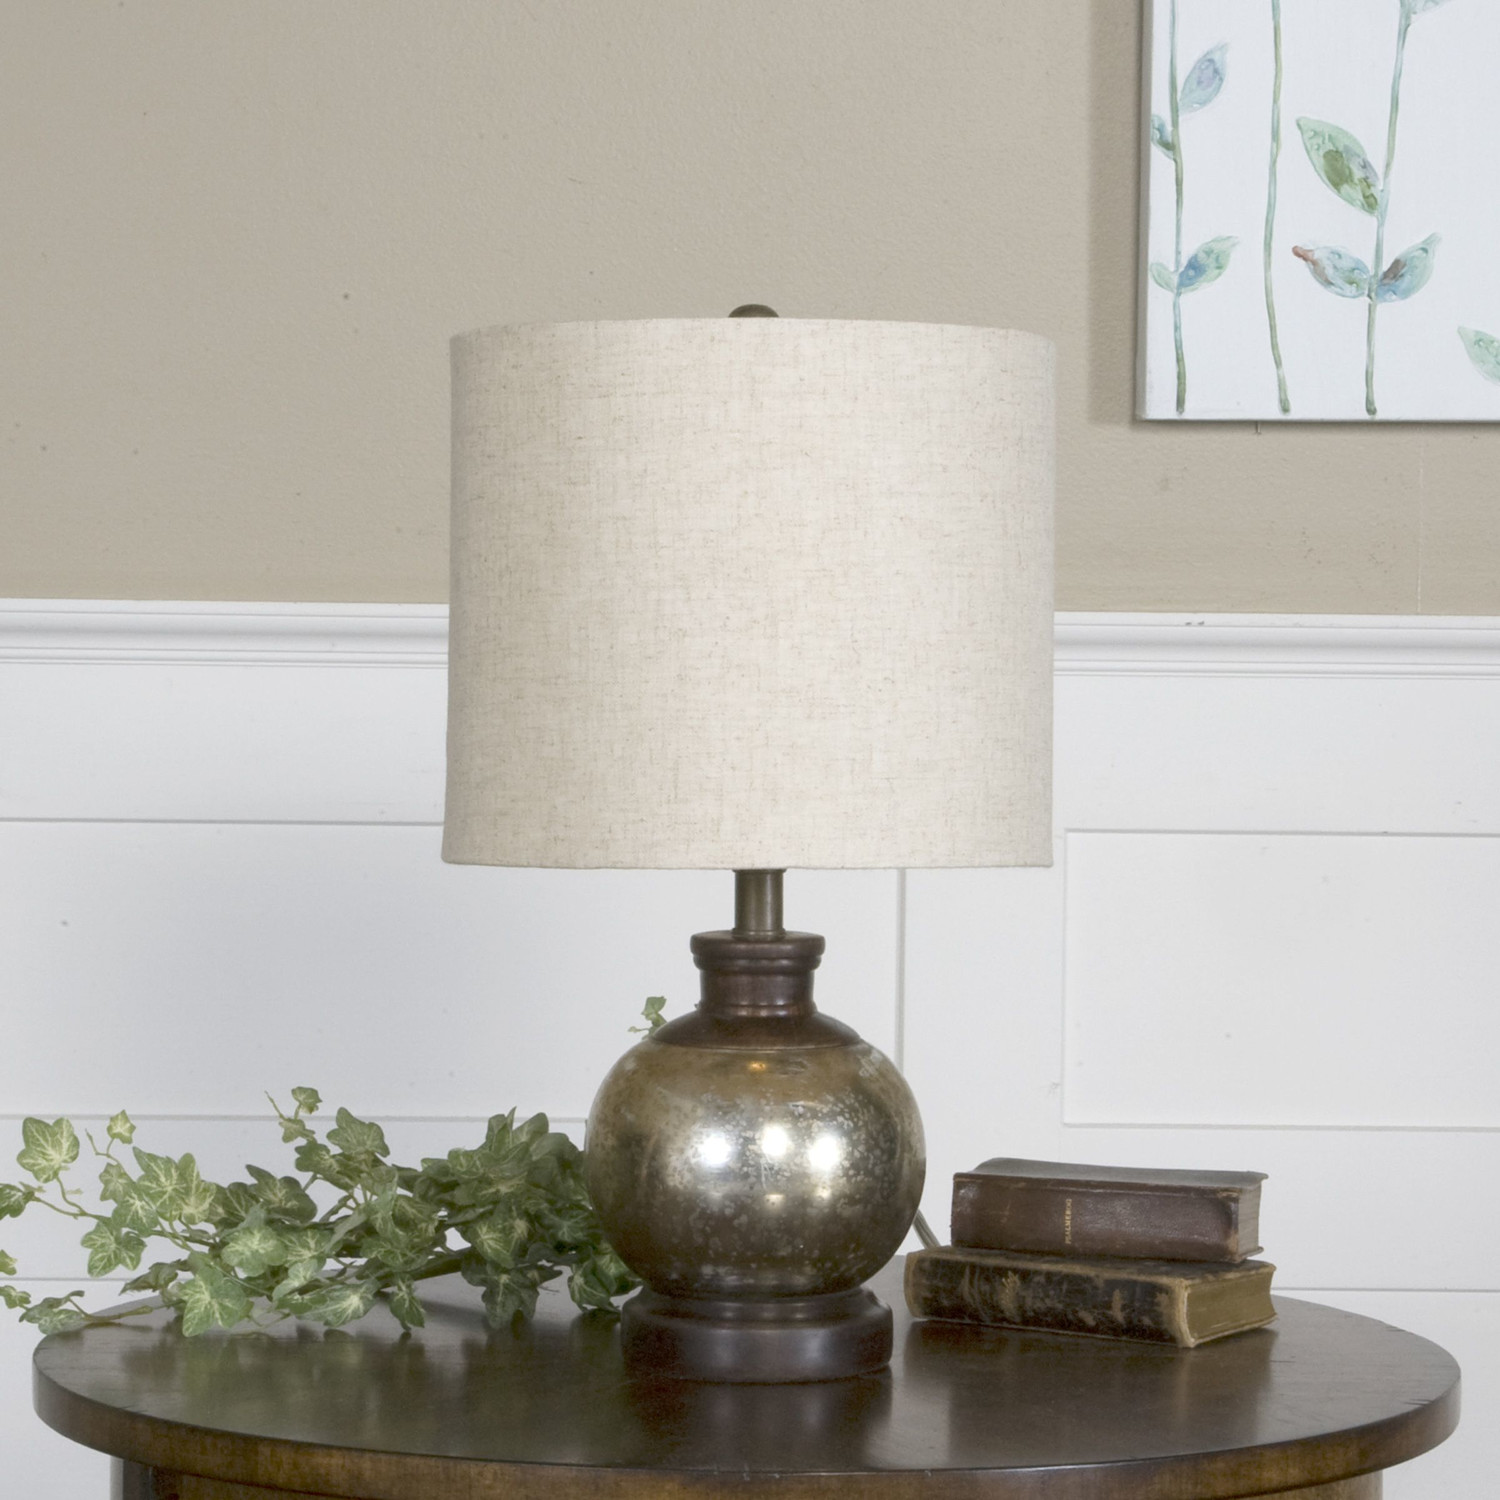 Uttermost-Arago-15-H-Table-Lamp-with-Drum-Shade-26208-1.jpg